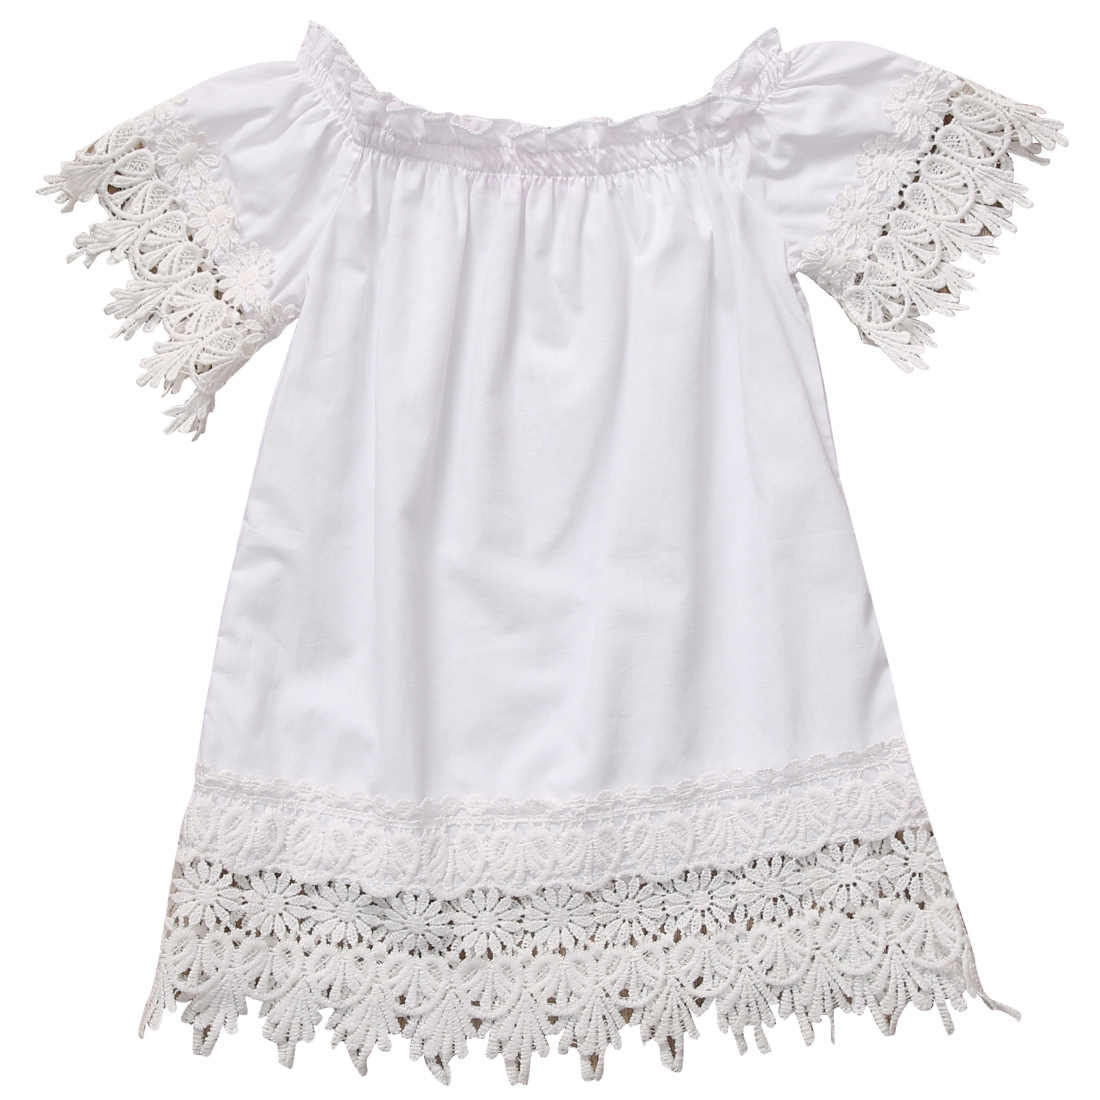 4c2bfab51d95 Detail Feedback Questions about Casual Kids Baby Girl Princess Party ...